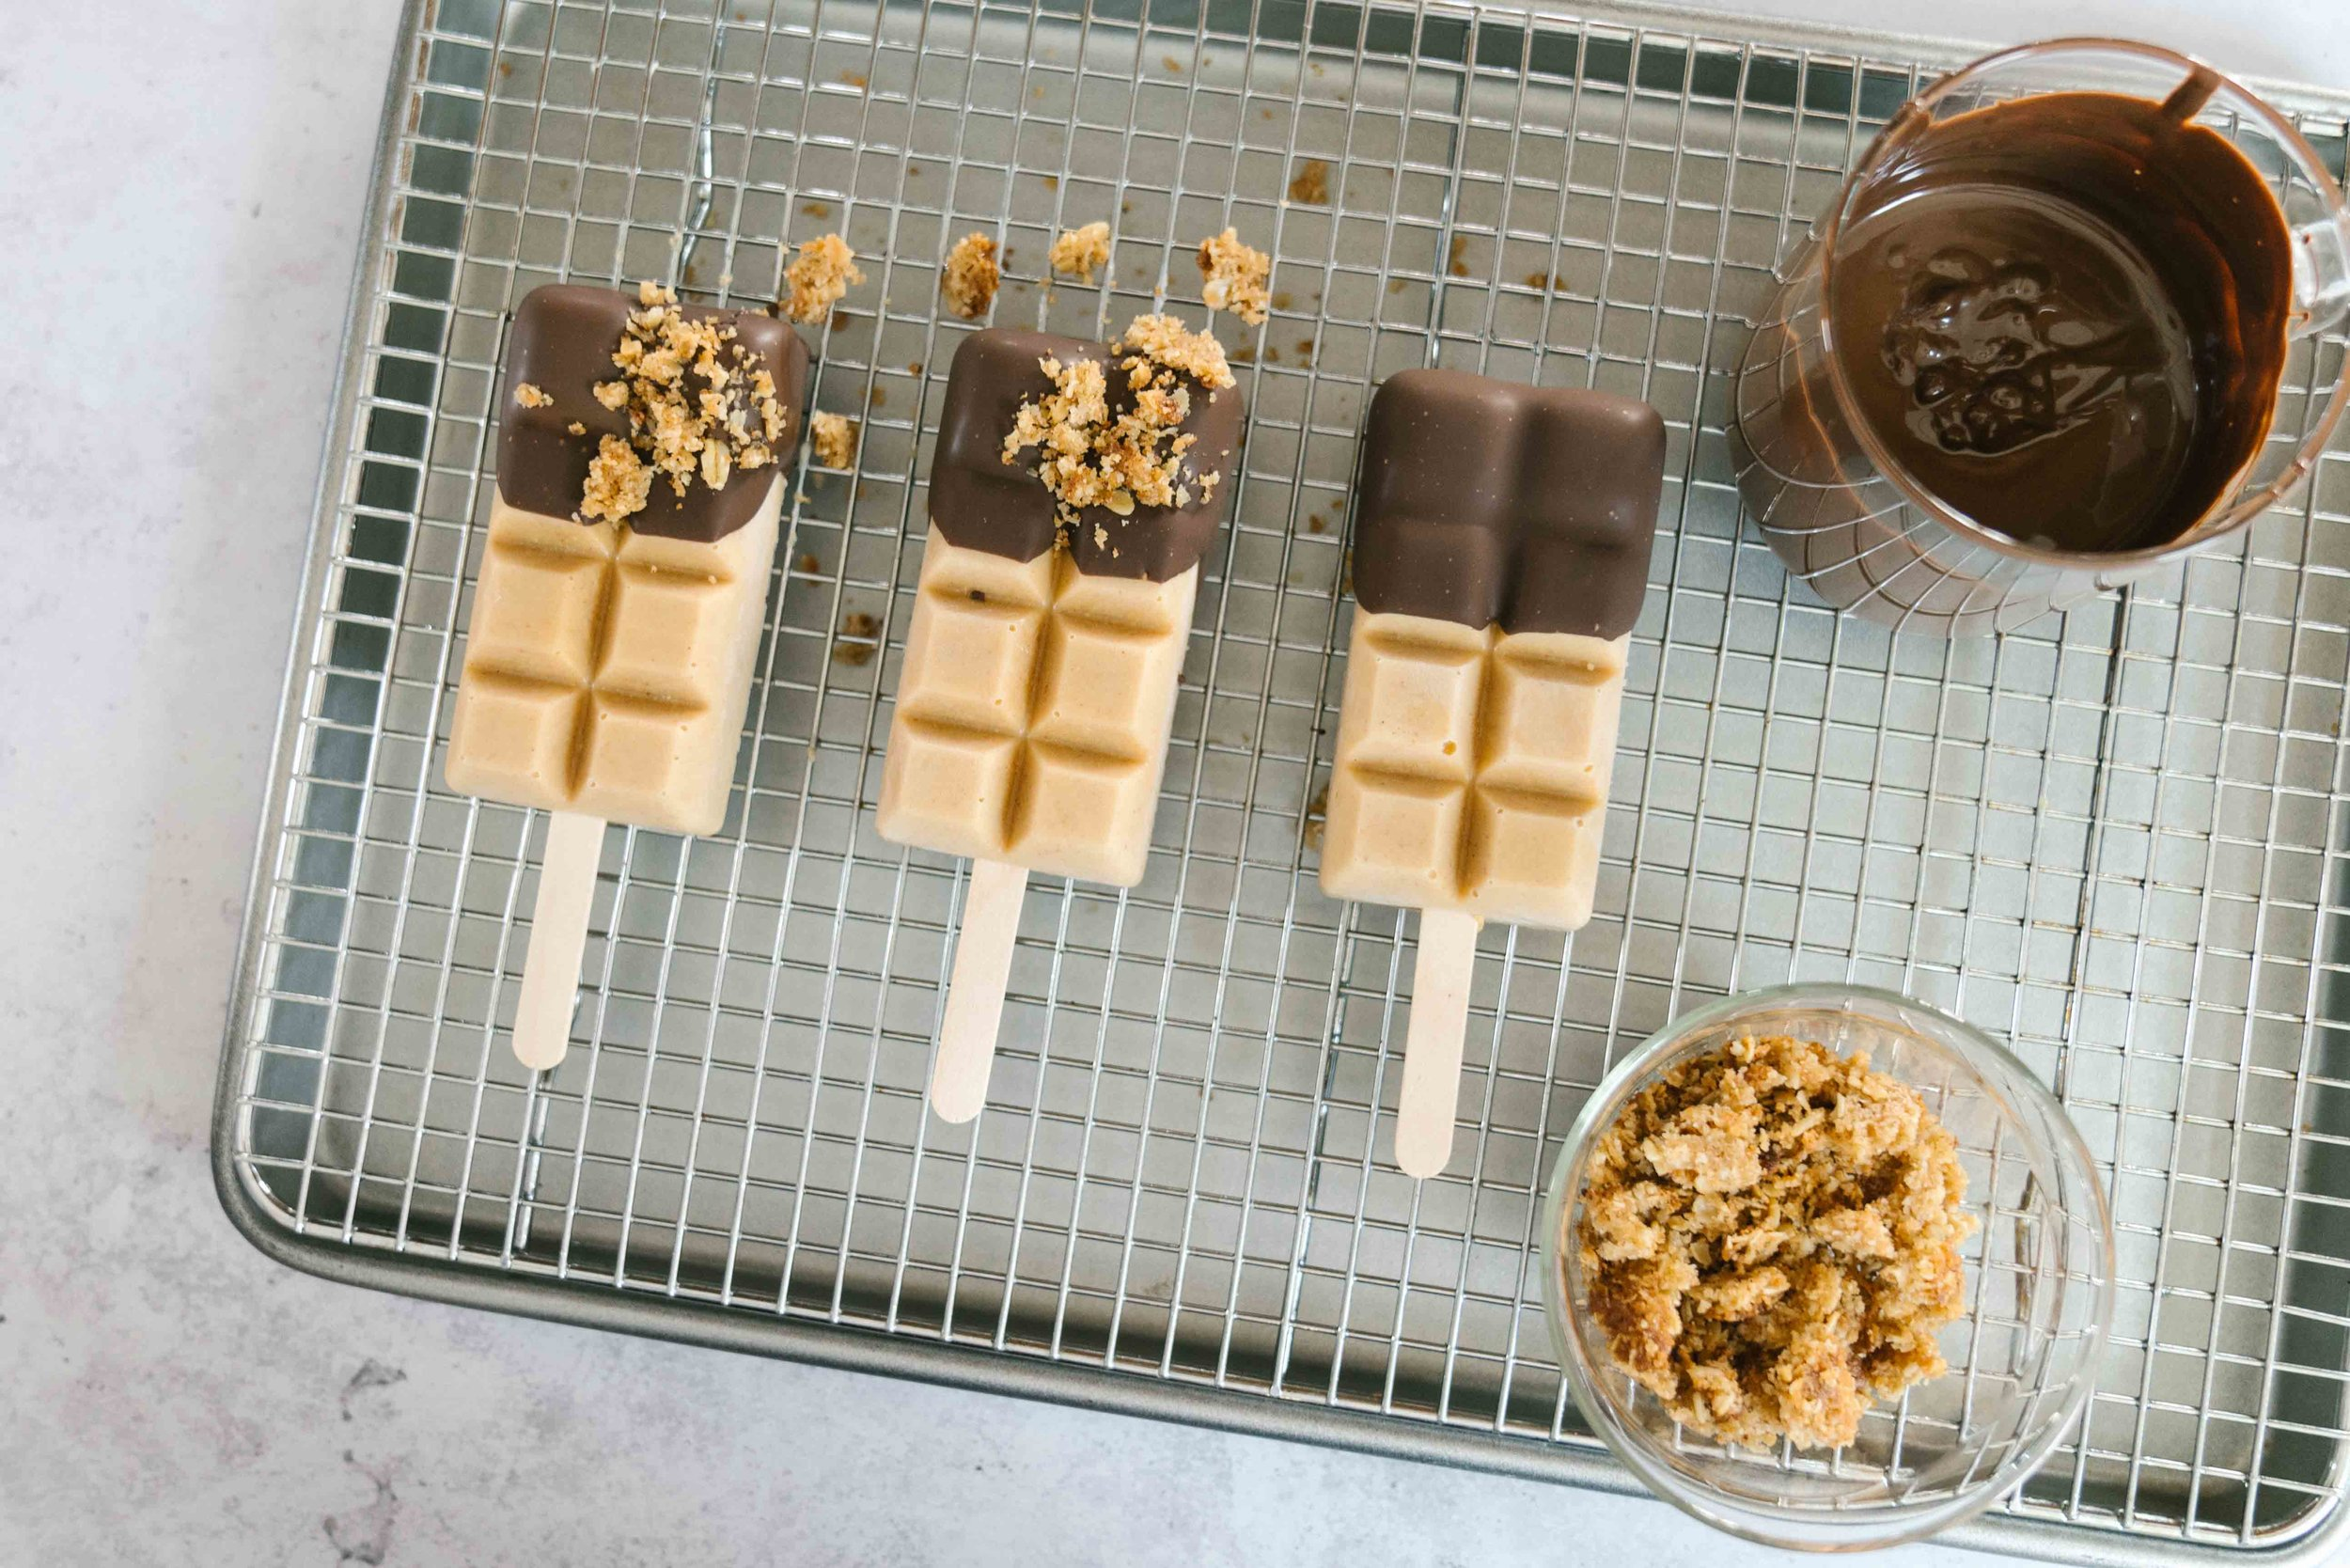 You Need These Popsicle Molds: Peanut Butter Waffle Popsicle Recipe